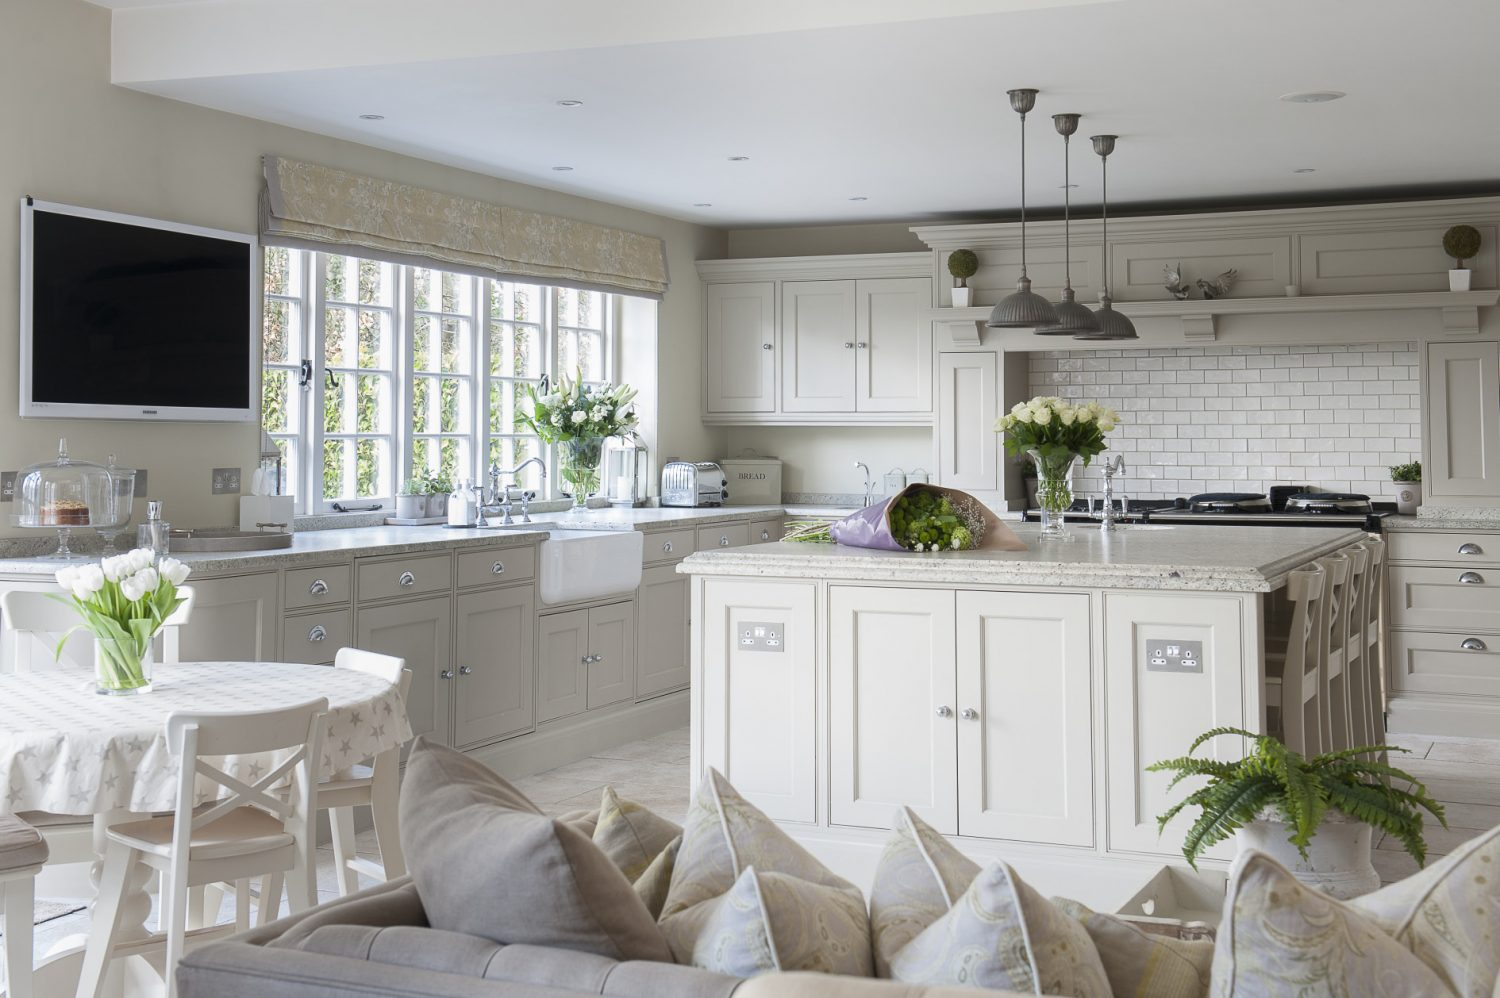 The smartly appointed kitchen inhabits a vast space that was once the garage